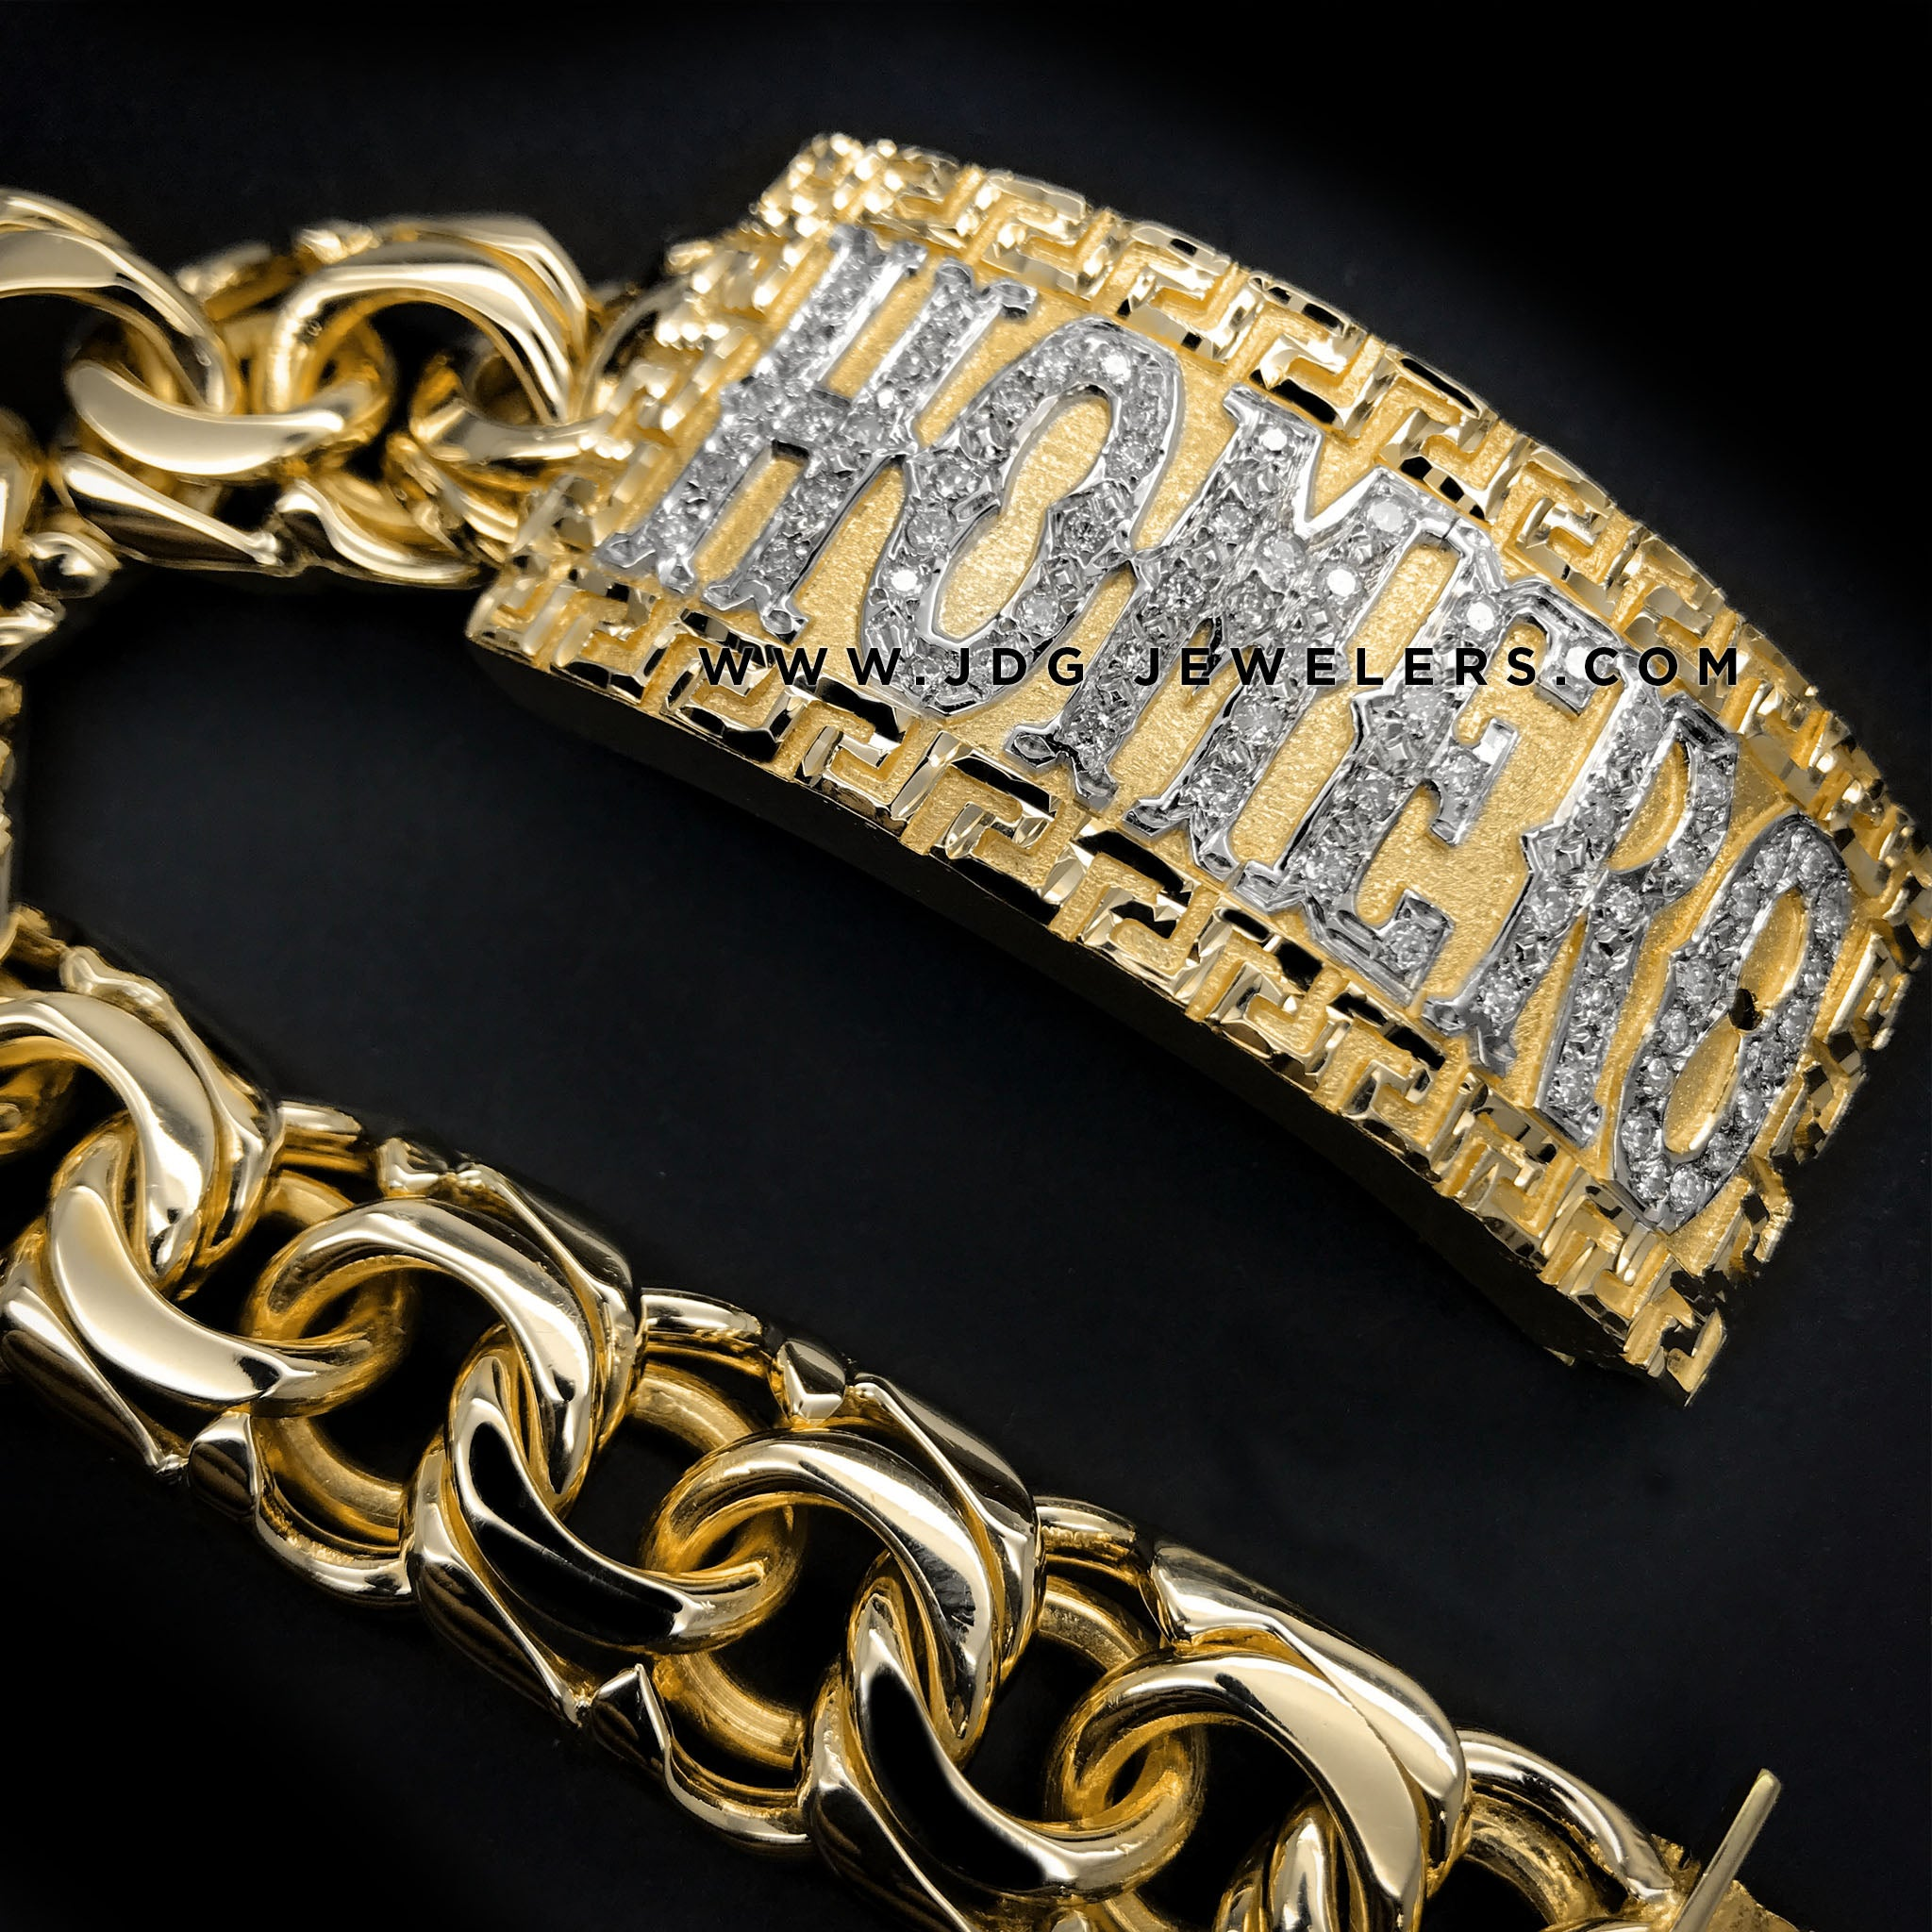 Chino Link ID Bracelet with Versace border and Stones